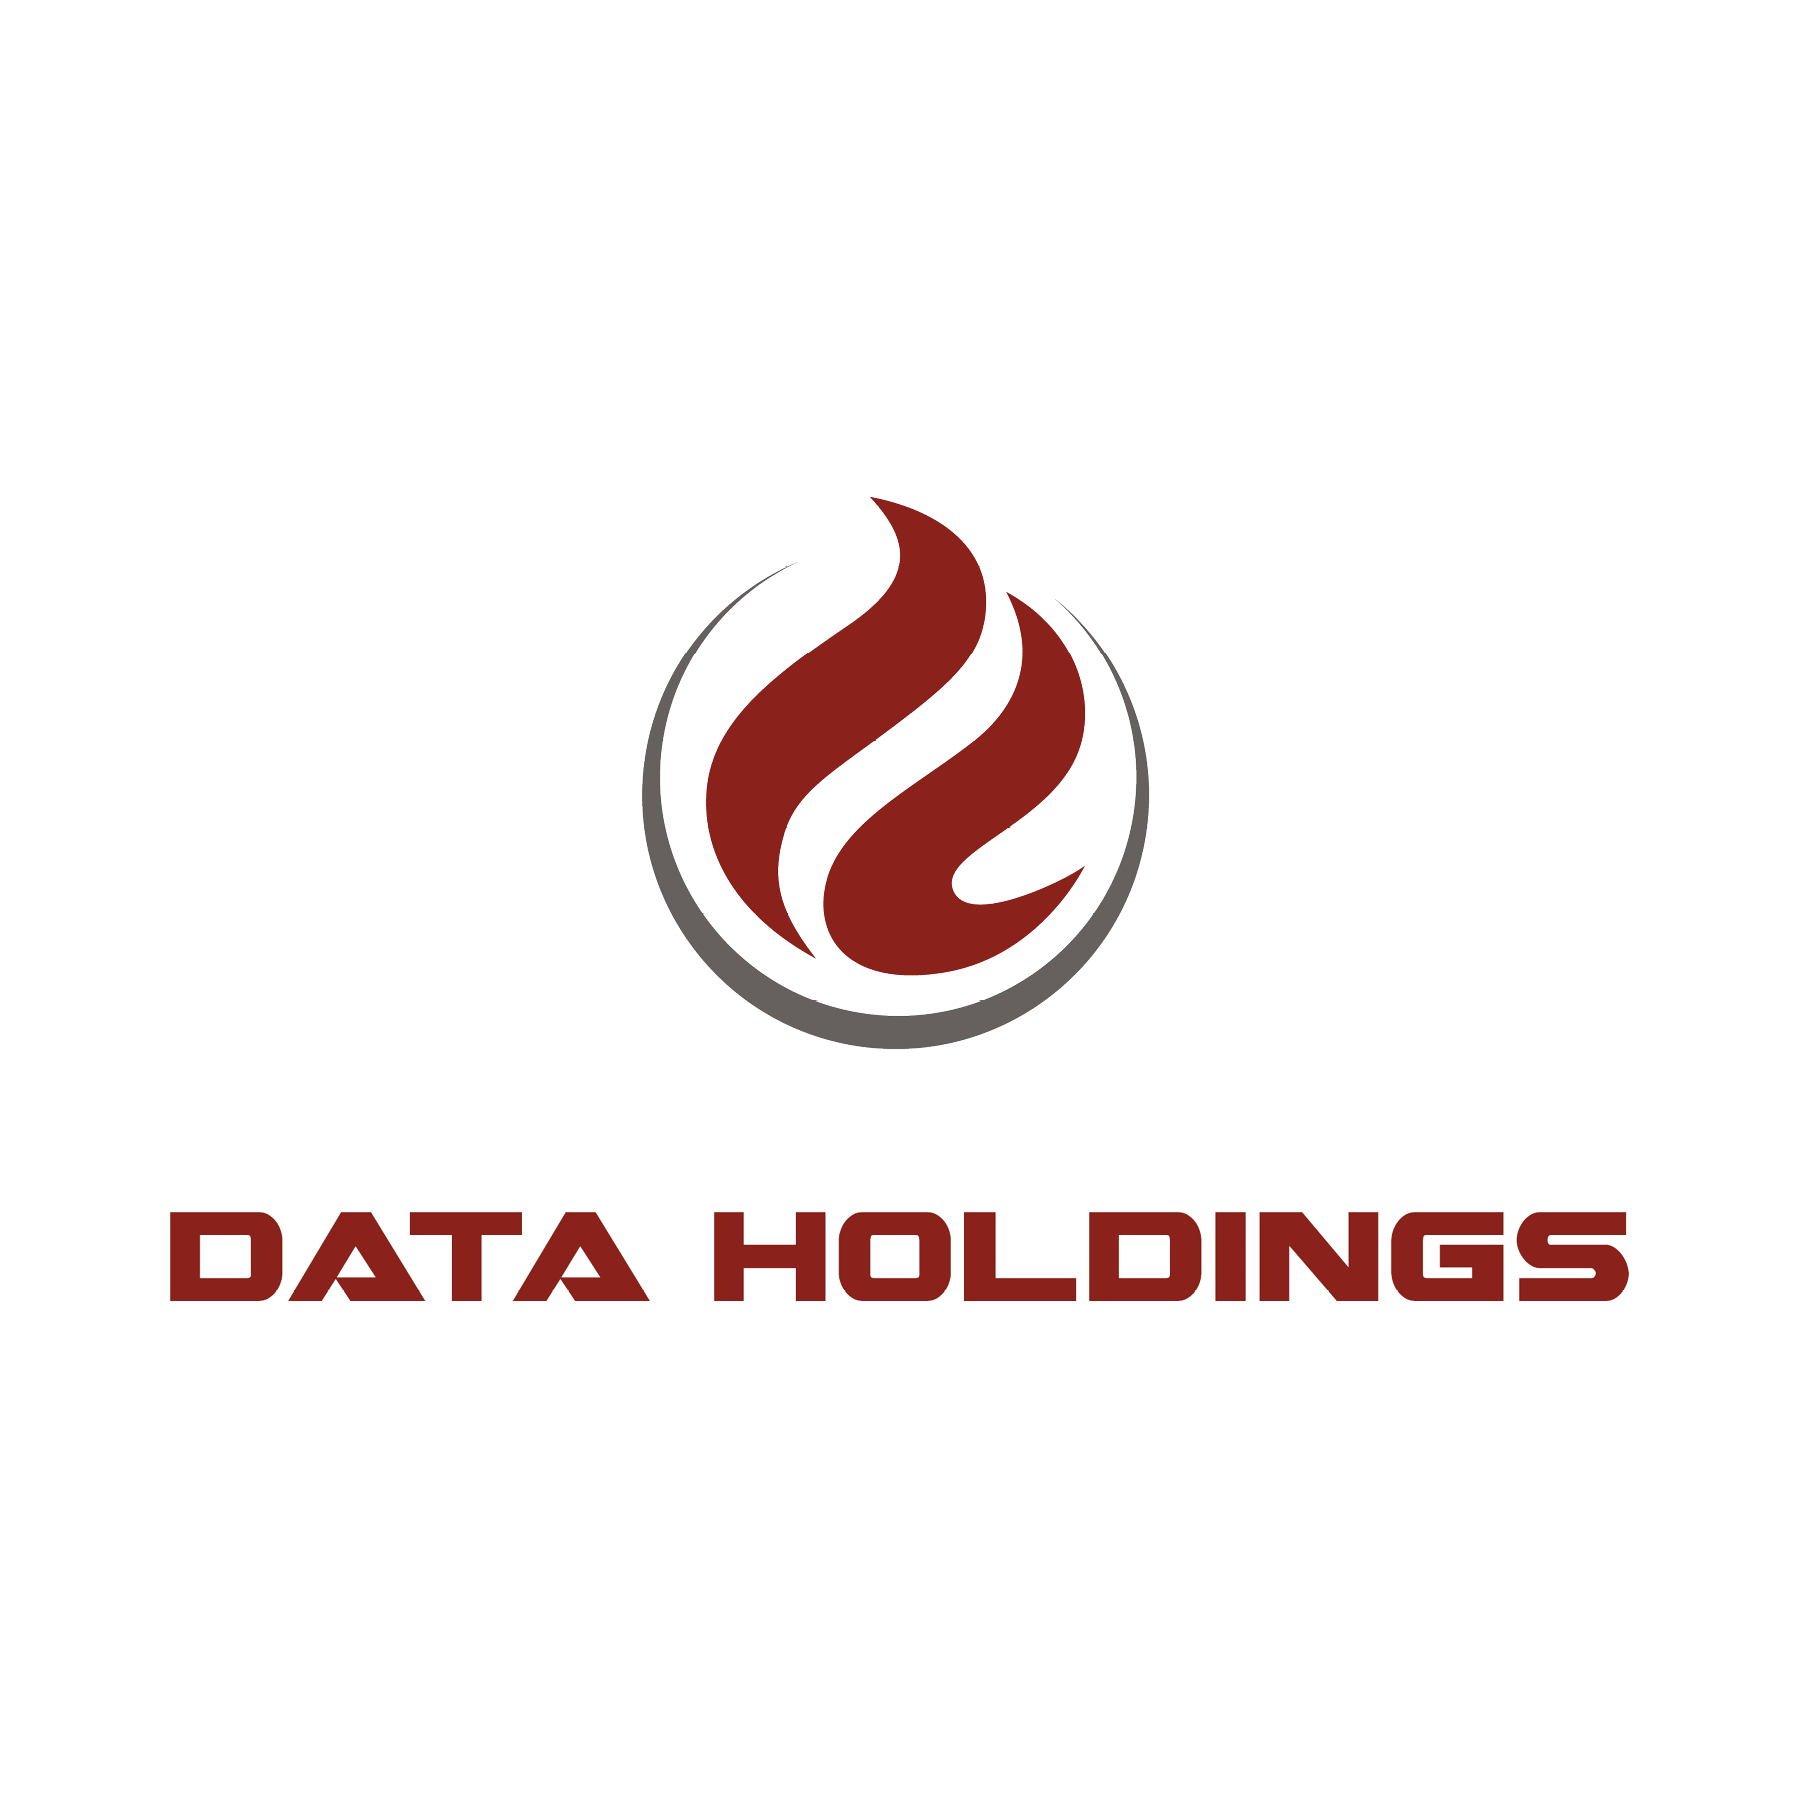 Data Holdings is a newly constructed, highly secure data center that stores critical business data for customers. As a Tier III enhanced facility, DH features best-in-class technologies and robust systems which are monitored 24 hours per day by professional staff dedicated to providing reliable services.